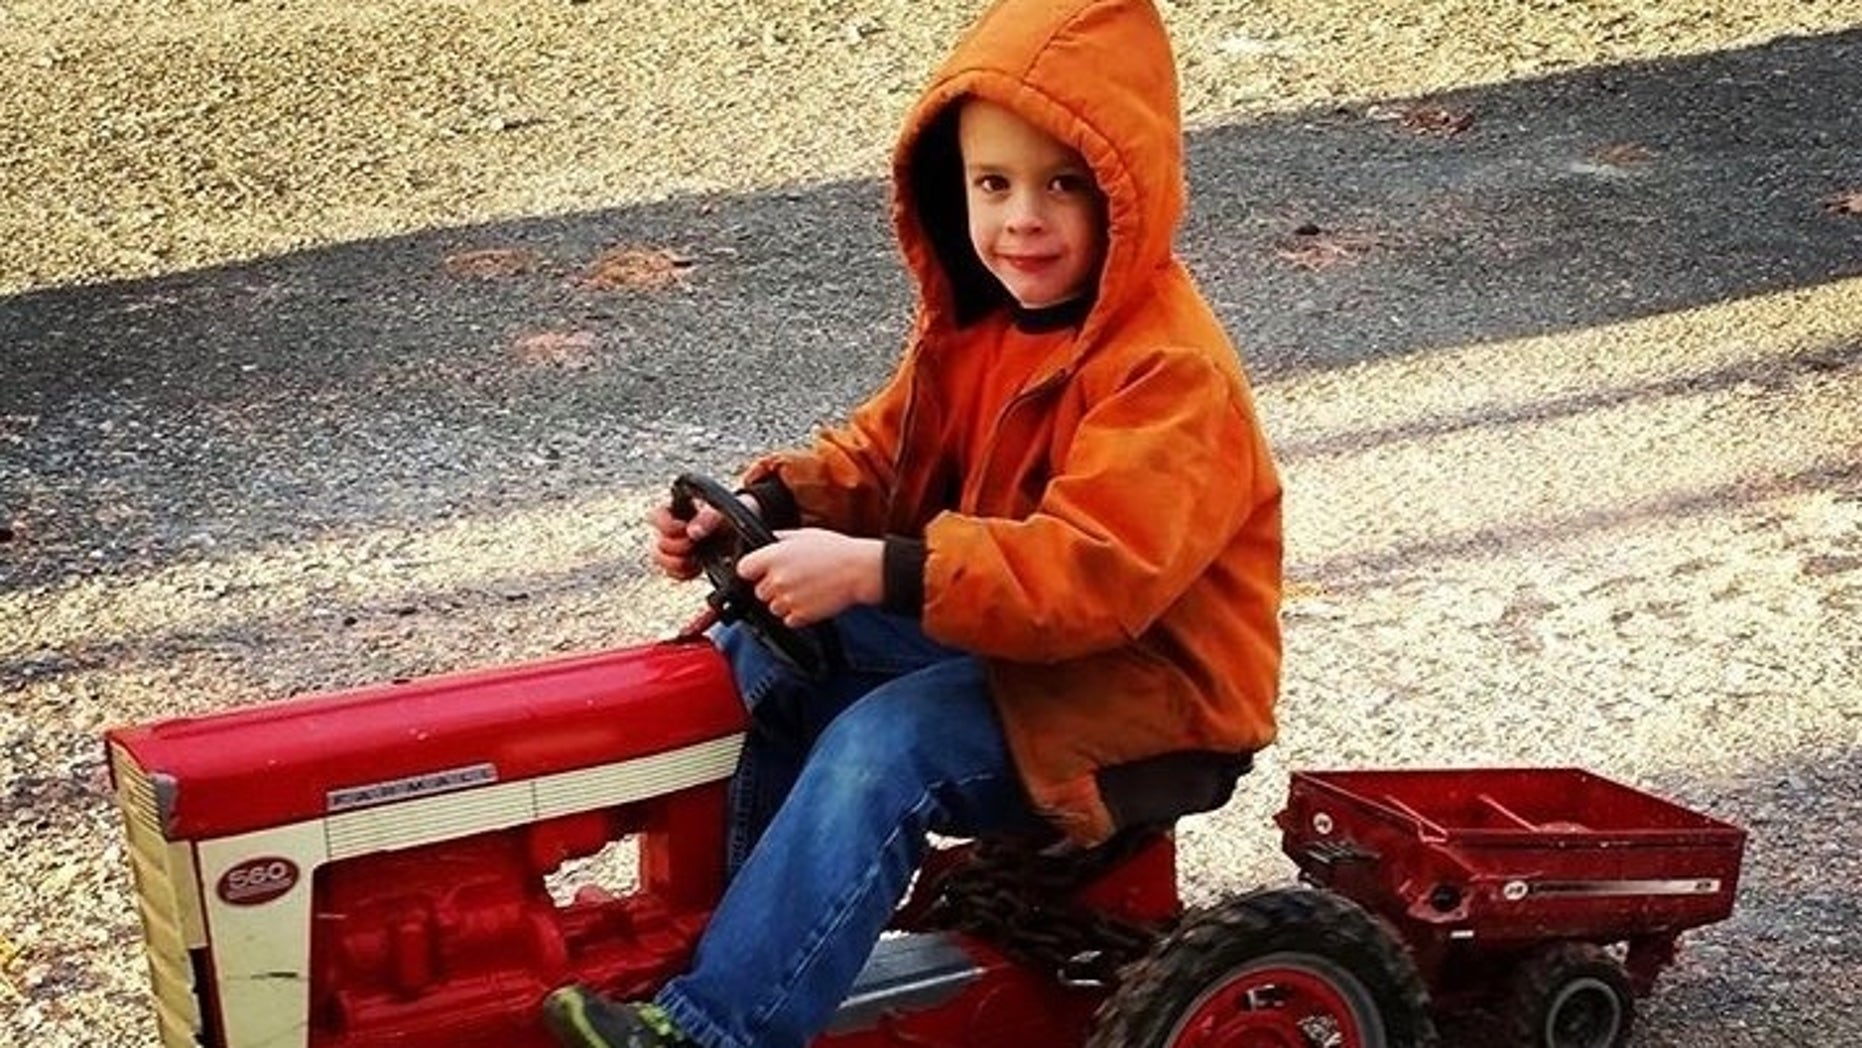 Wellington Shaffer, who celebrated his birthday just two days before Saturday's tragic accident, was pulled from the bottom of the trailer and flown to Geisinger Medical Center.